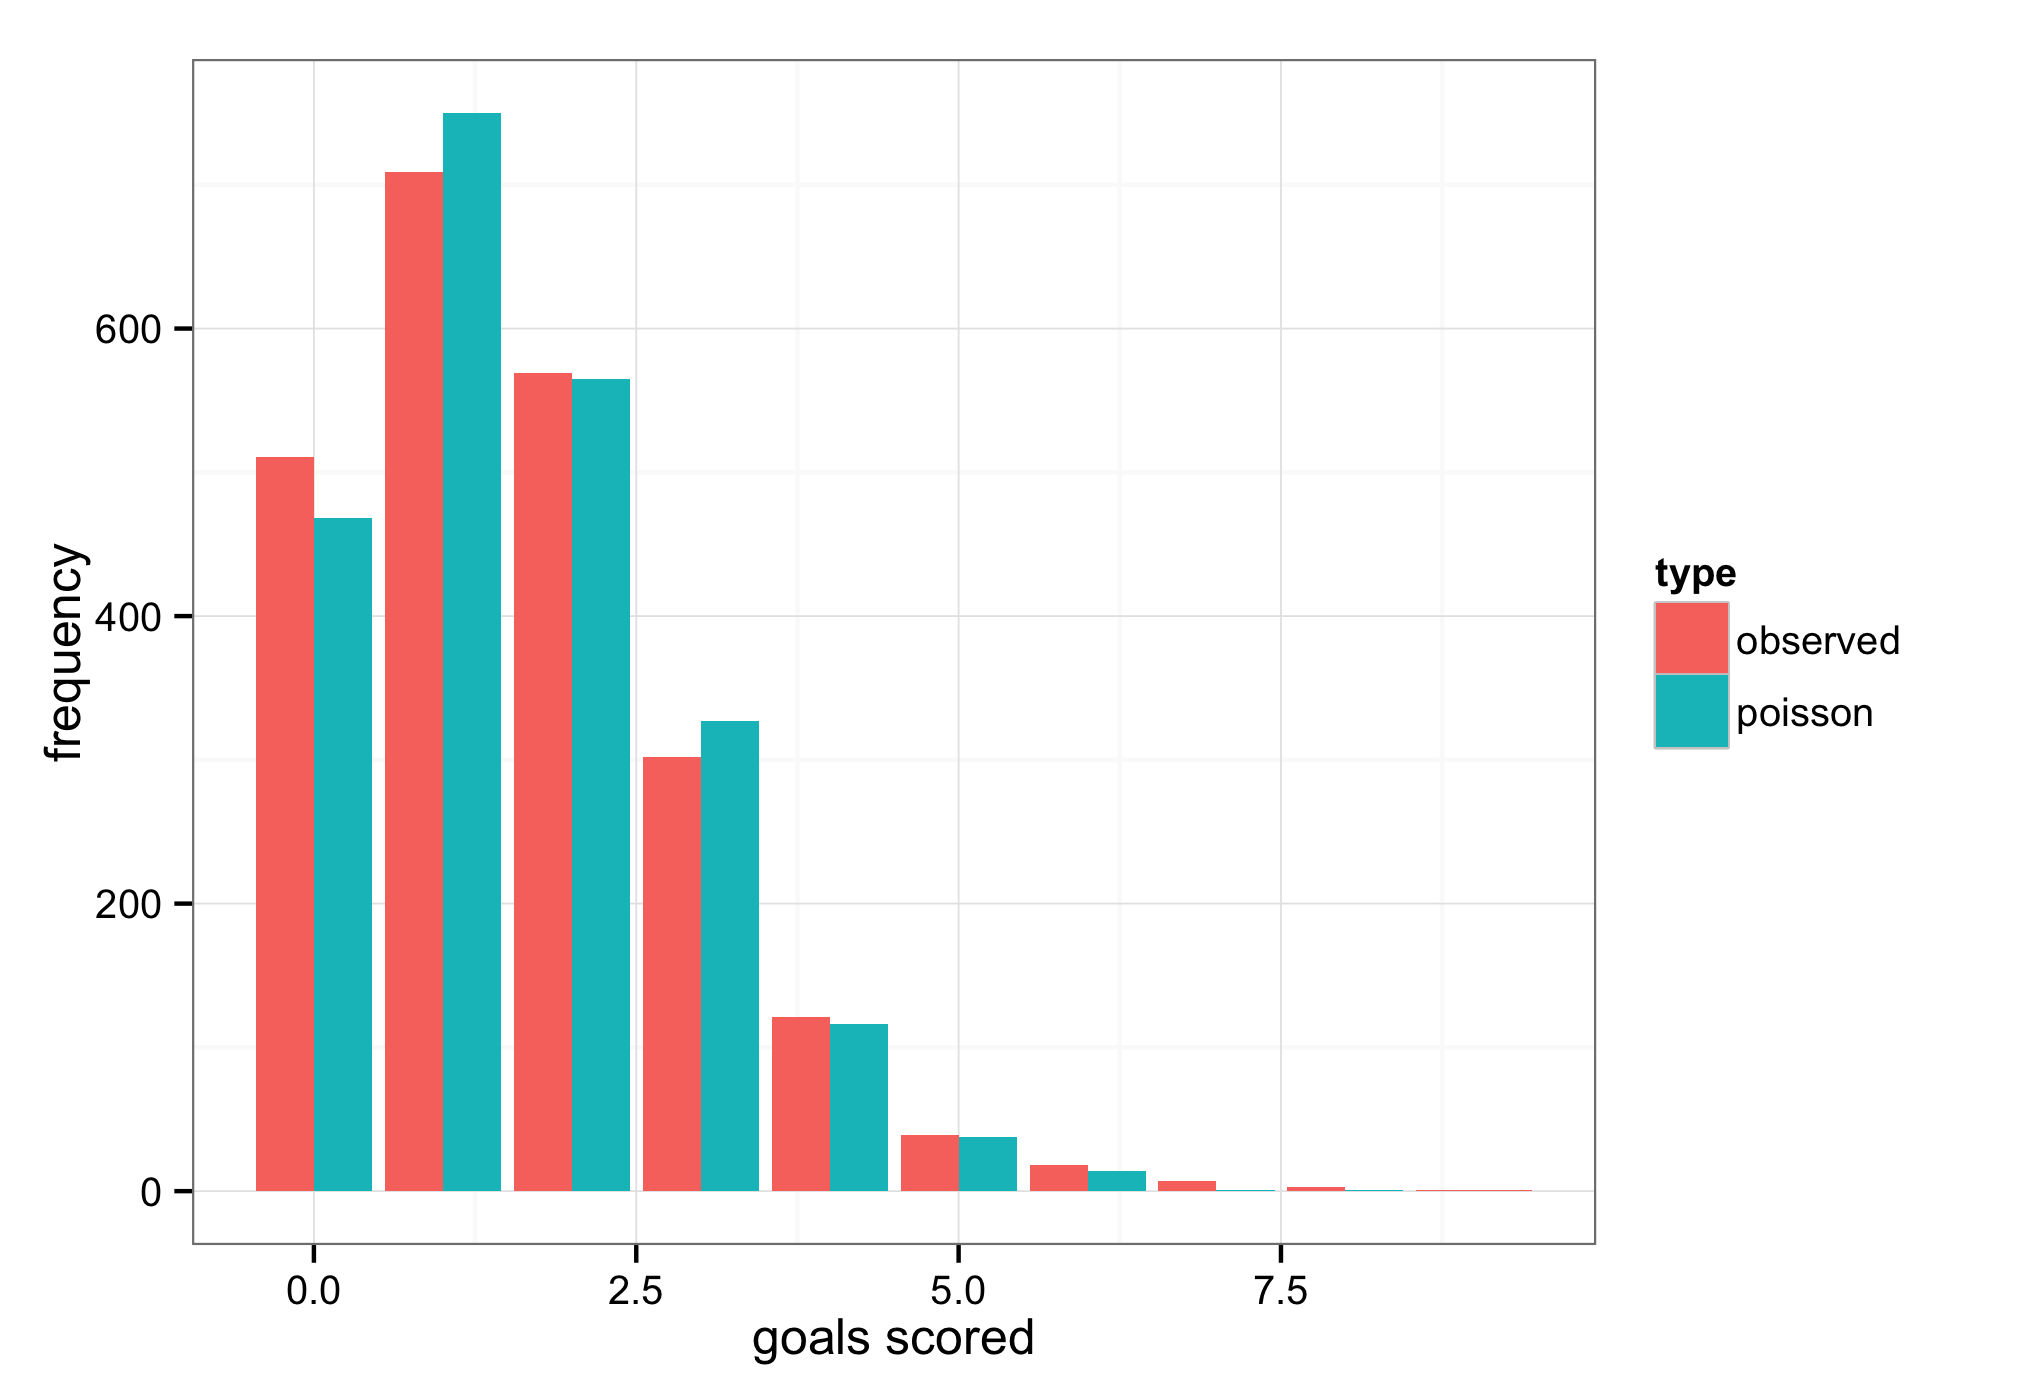 Since We Know The Probability Distribution That Describes Goal Scoring It's  Actually Fairly Trivial To Calculate The Probability Of A Team Scoring 0,  1, 2,